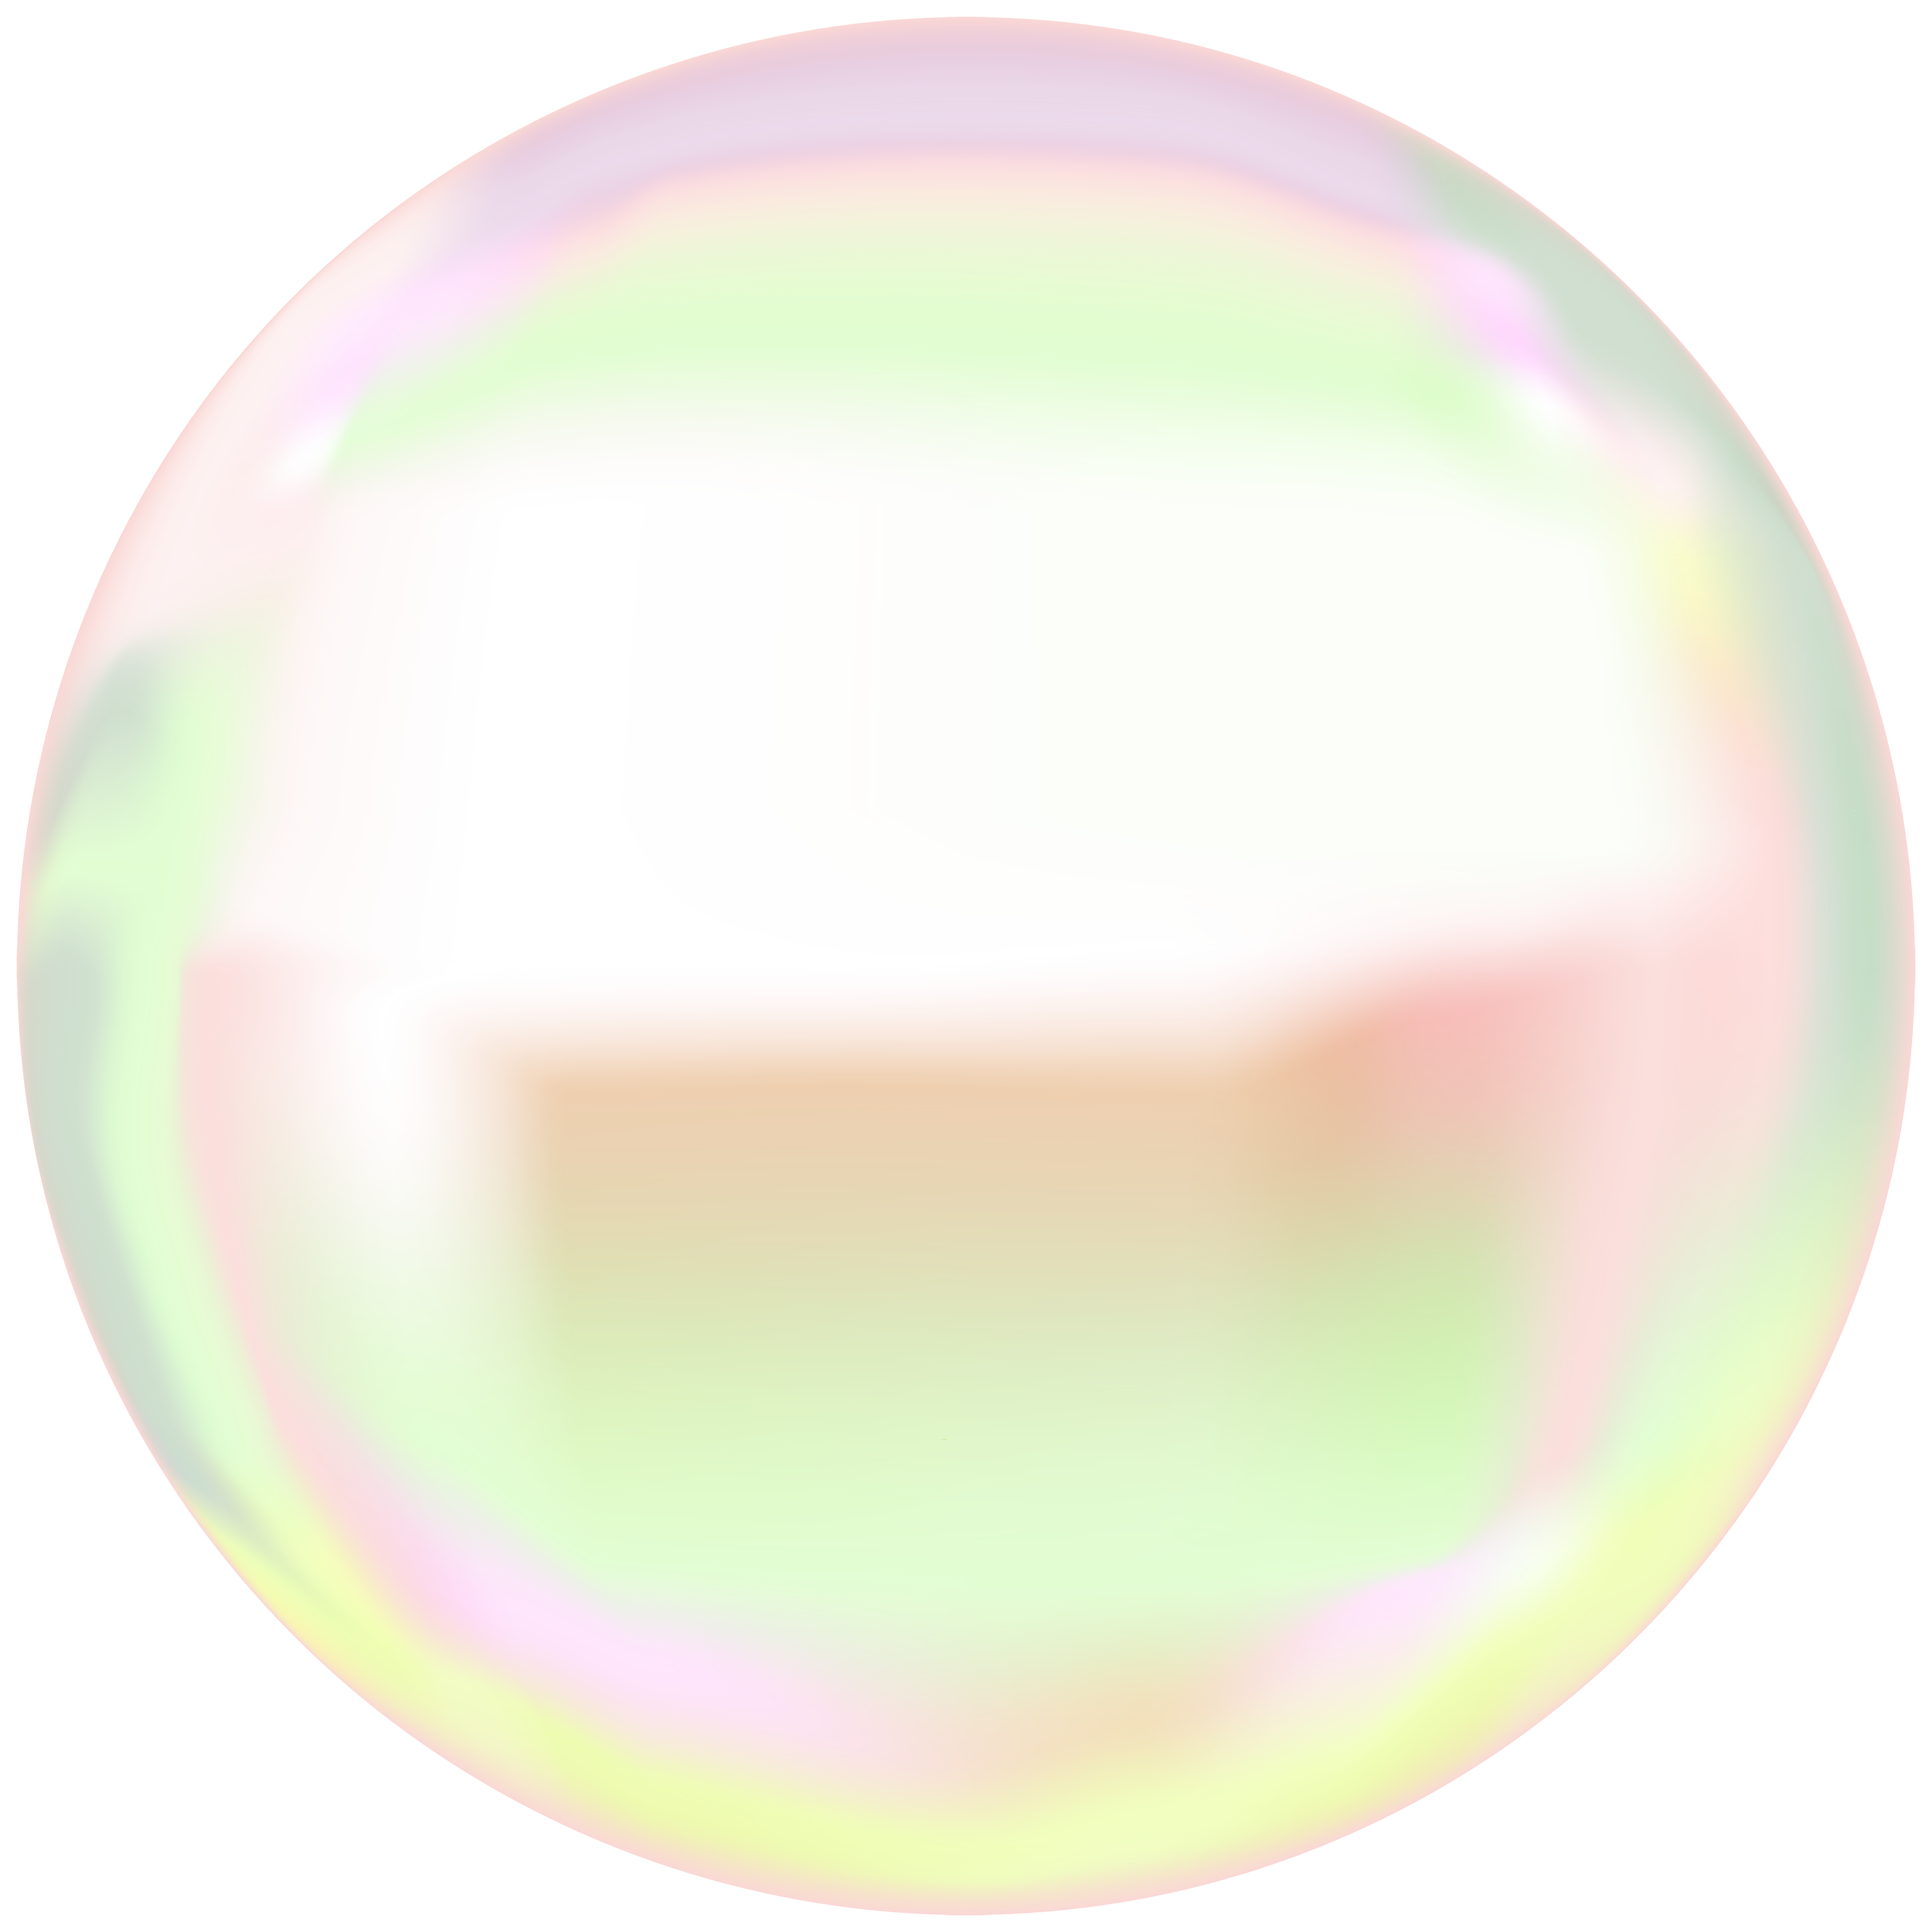 Transparent Bubble Png Clip Art Image Gallery Yopriceville High Quality Images And Transparent Png Free Clipart Clip Art Bubbles Free Clip Art